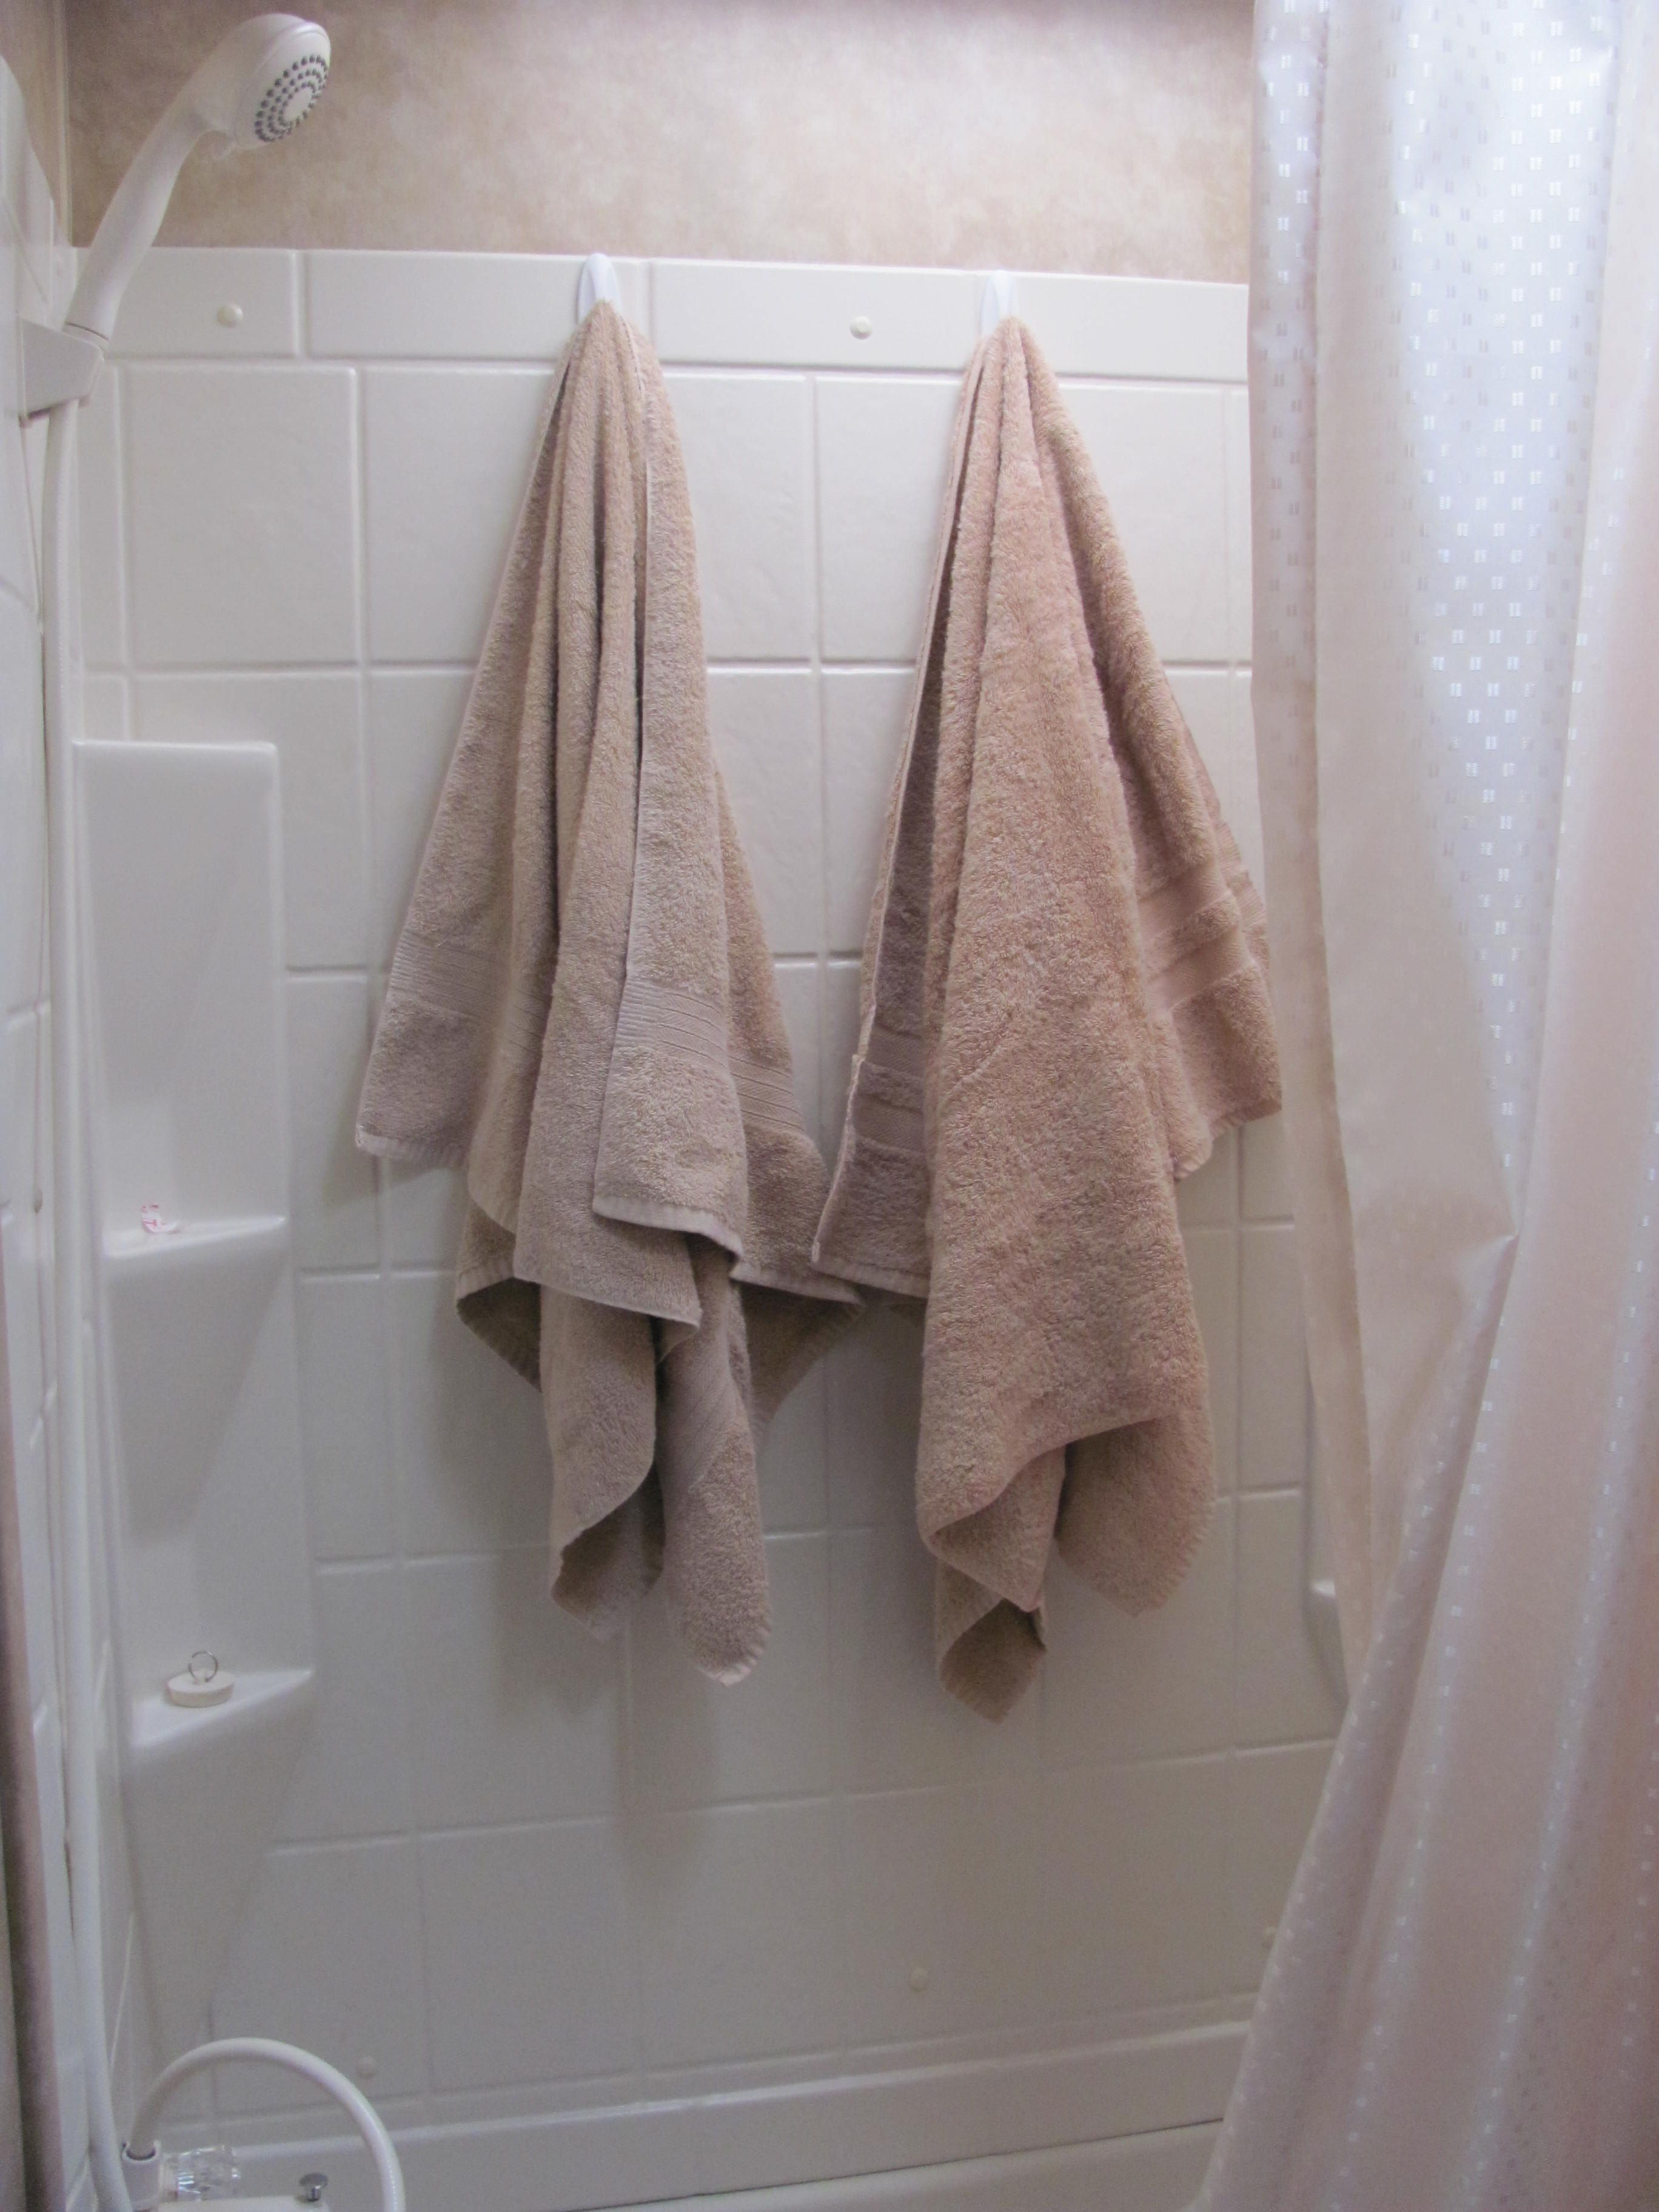 Where To Hang Towels In Small Bathroom 28 Images With A Family Of Five And A Very Small Cer